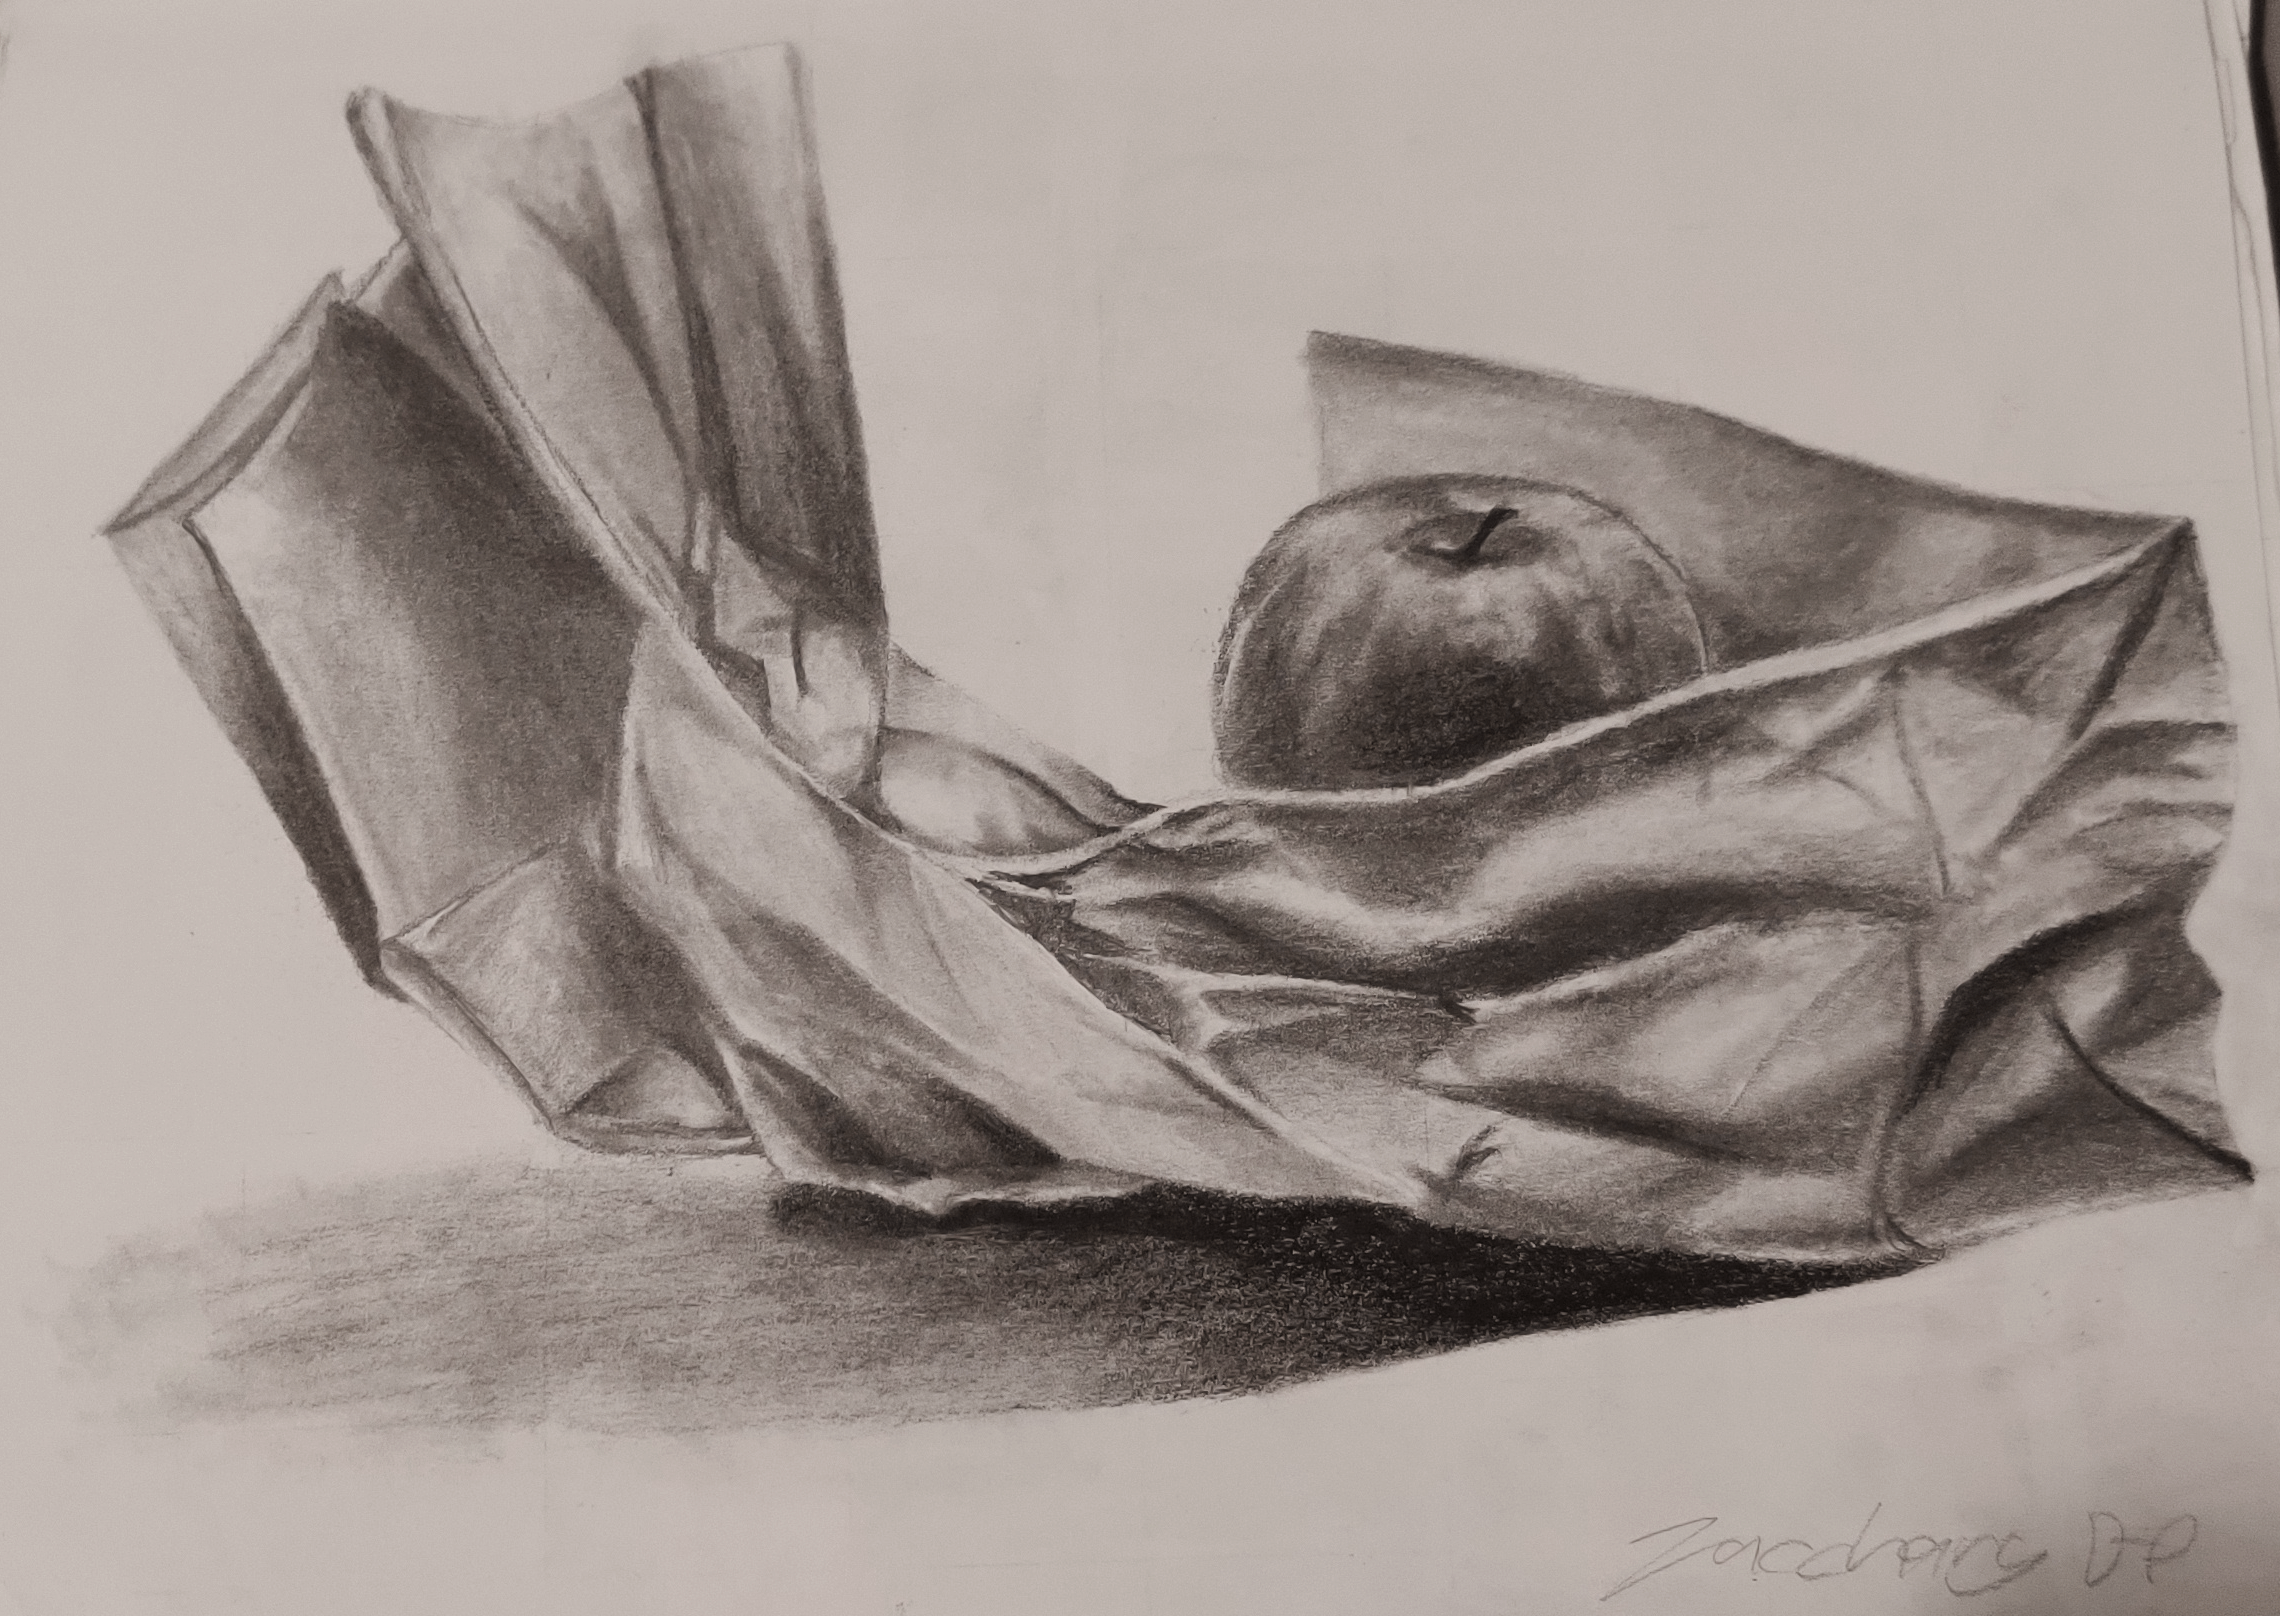 A value drawing of an apple resting on a paper bag.